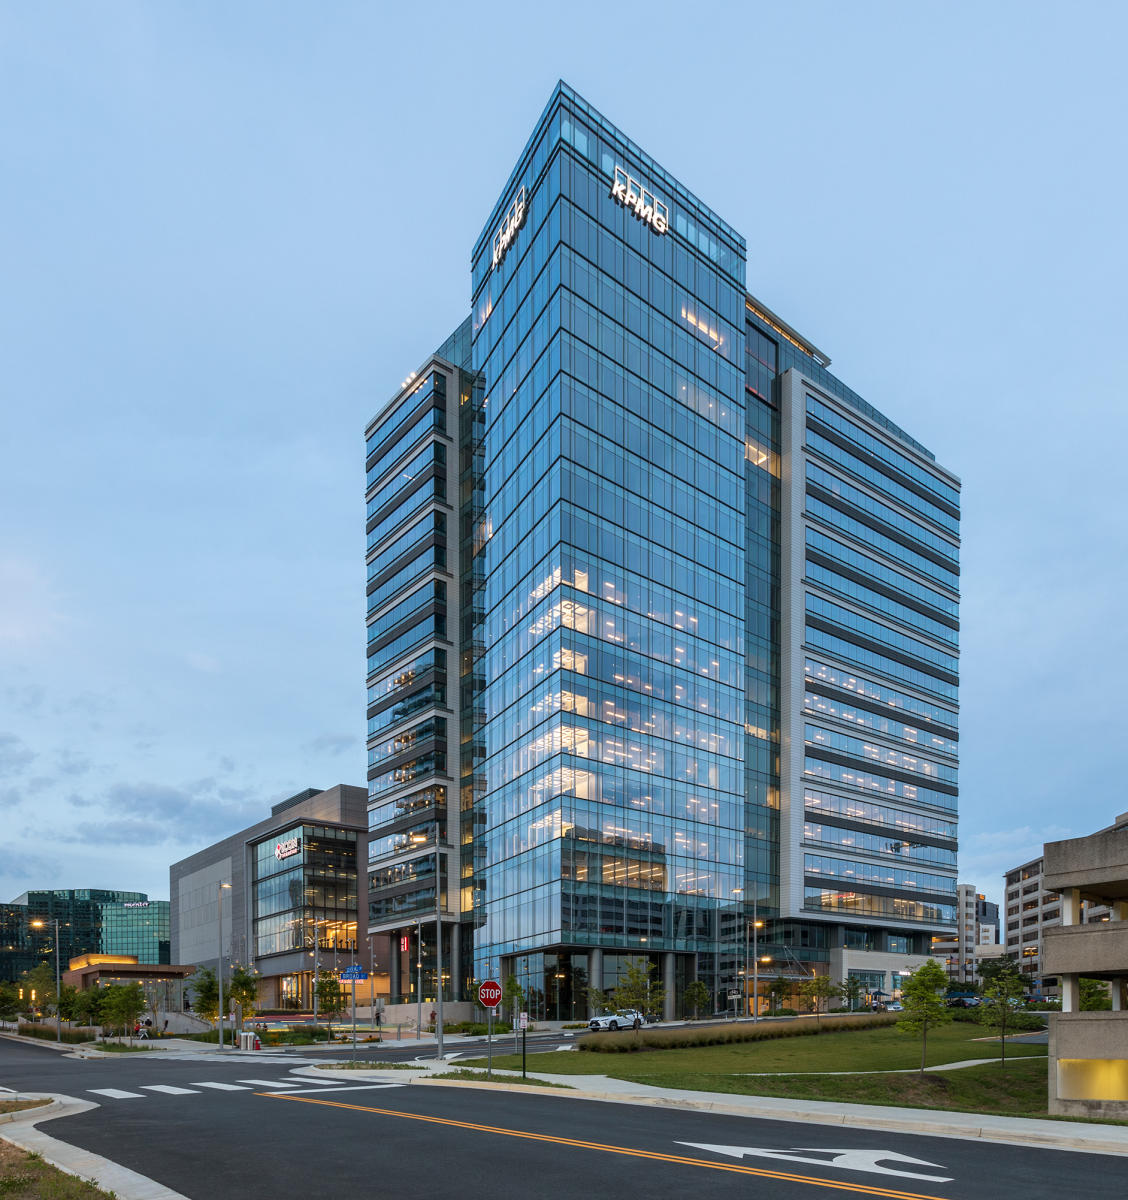 Client: Arban & Carosi   |   Project: The Boro; Tysons Corner, VA